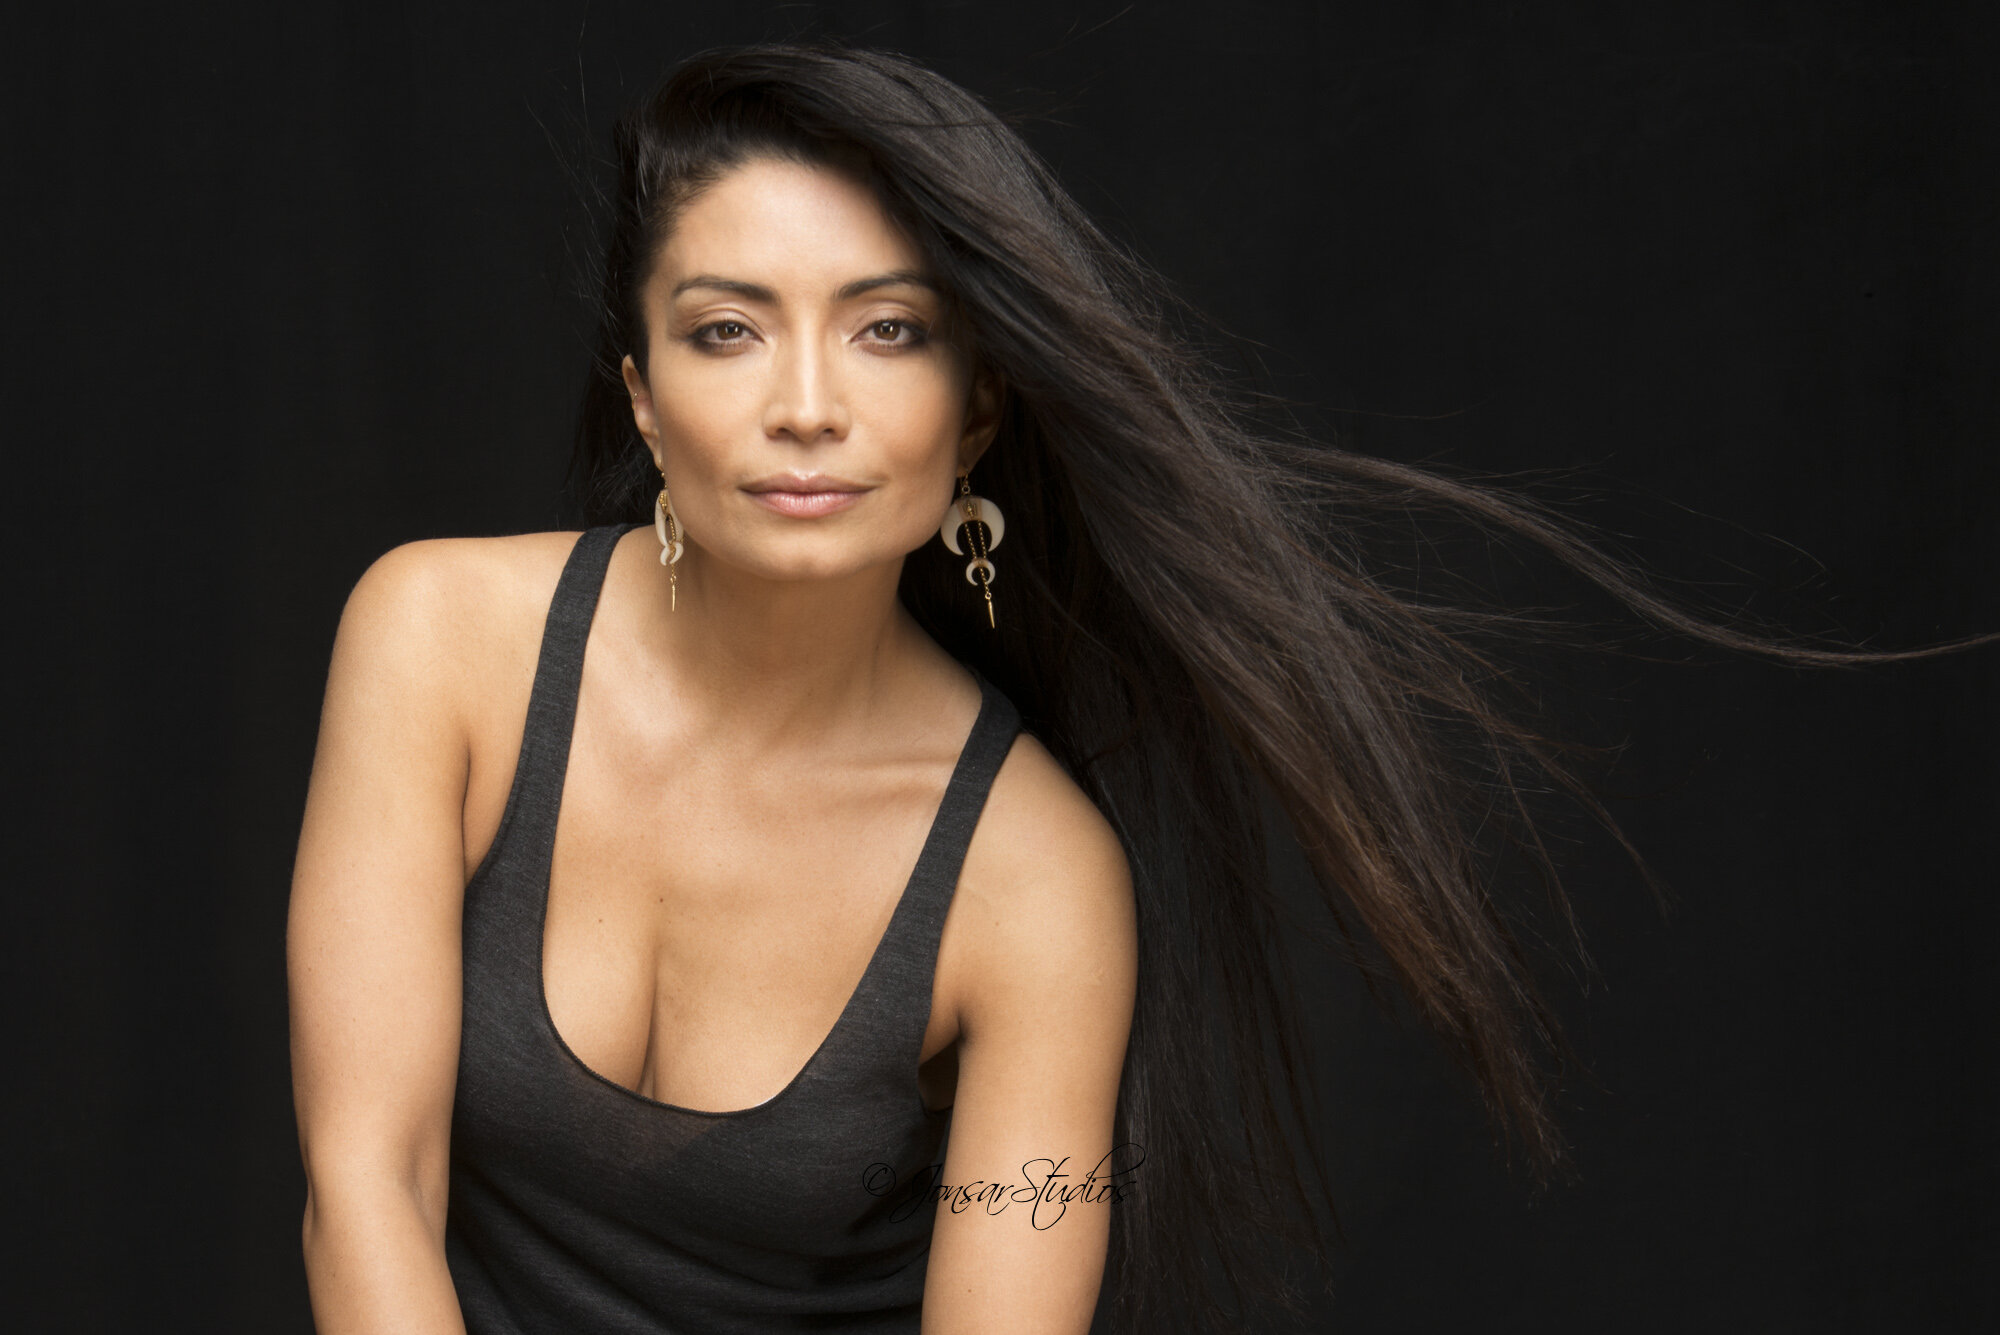 Color portrait of woman with long black hair on black background